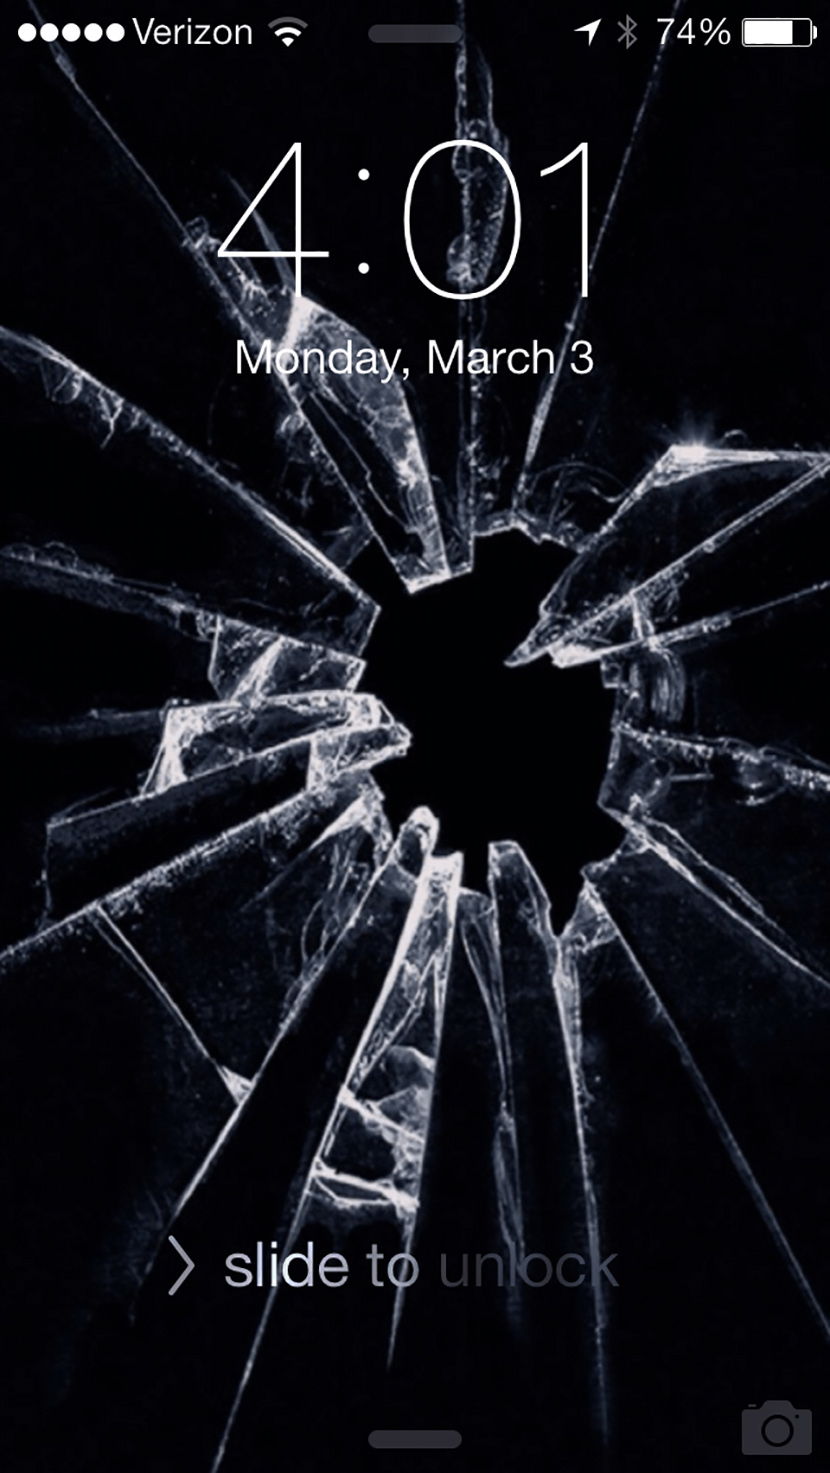 Broken Ipad Screen Wallpaper